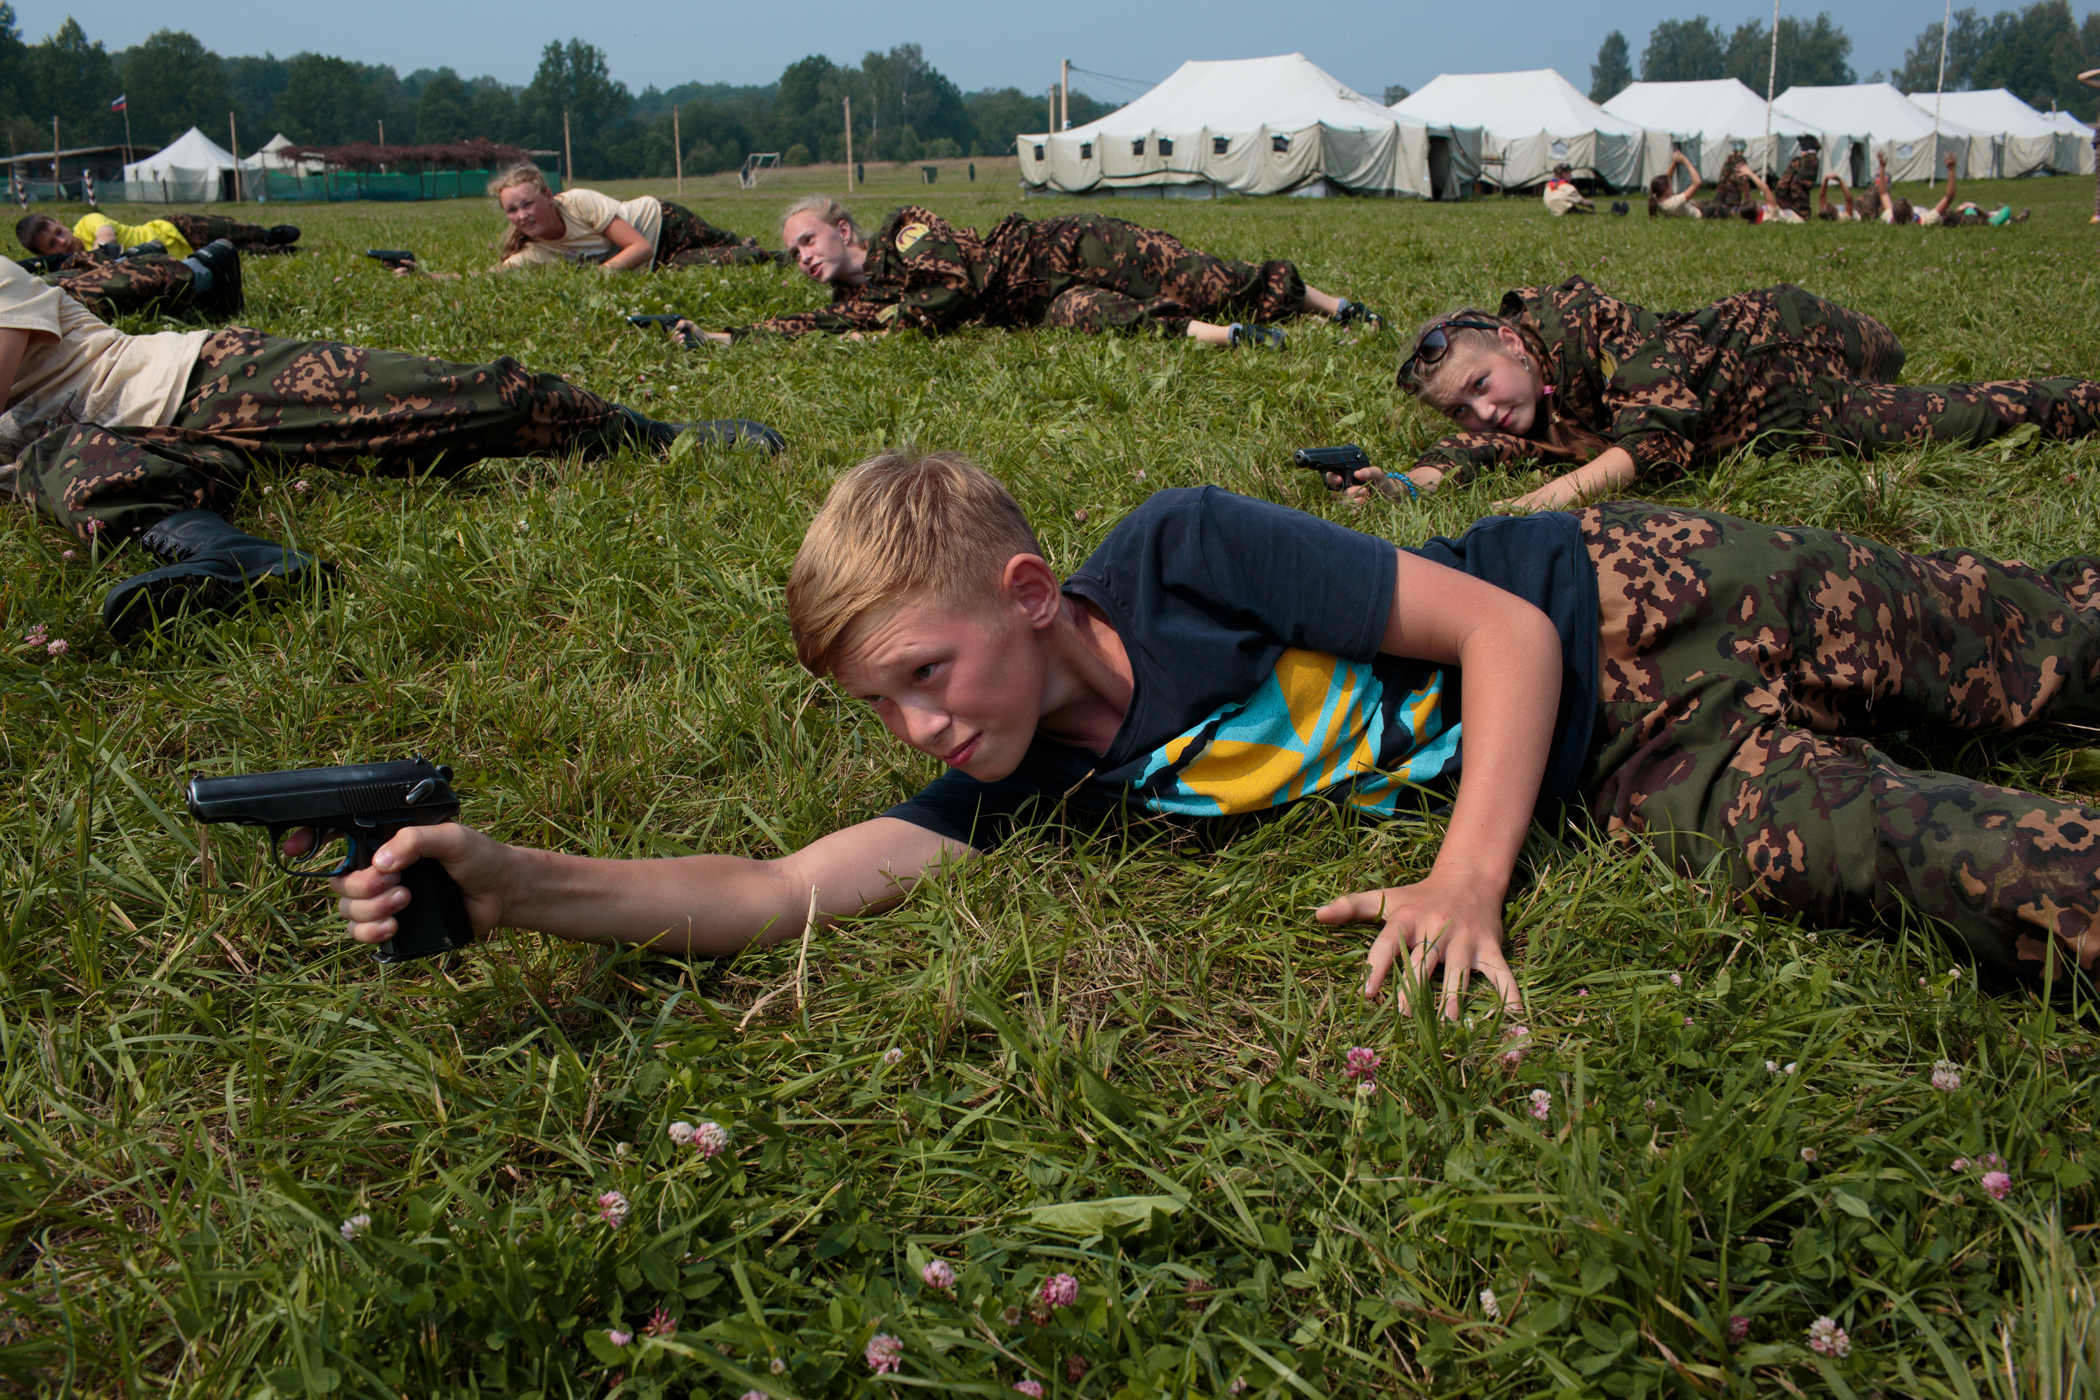 Campers practice shooting air soft guns at a Historical War Camp in Borodino, Russia. Borodino is where the deadliest day of the Napoleonic War was fought in 1812. 350 kids ages 11 to 17 attend the camp. It teaches campers about weapons, bases, and warfare.                                                               The project statement of the camp reads:  To awaken in the younger generation a keen interest in the history of the Fatherland, the glorious deeds of our ancestors, to facilitate the expansion of military-historical knowledge.